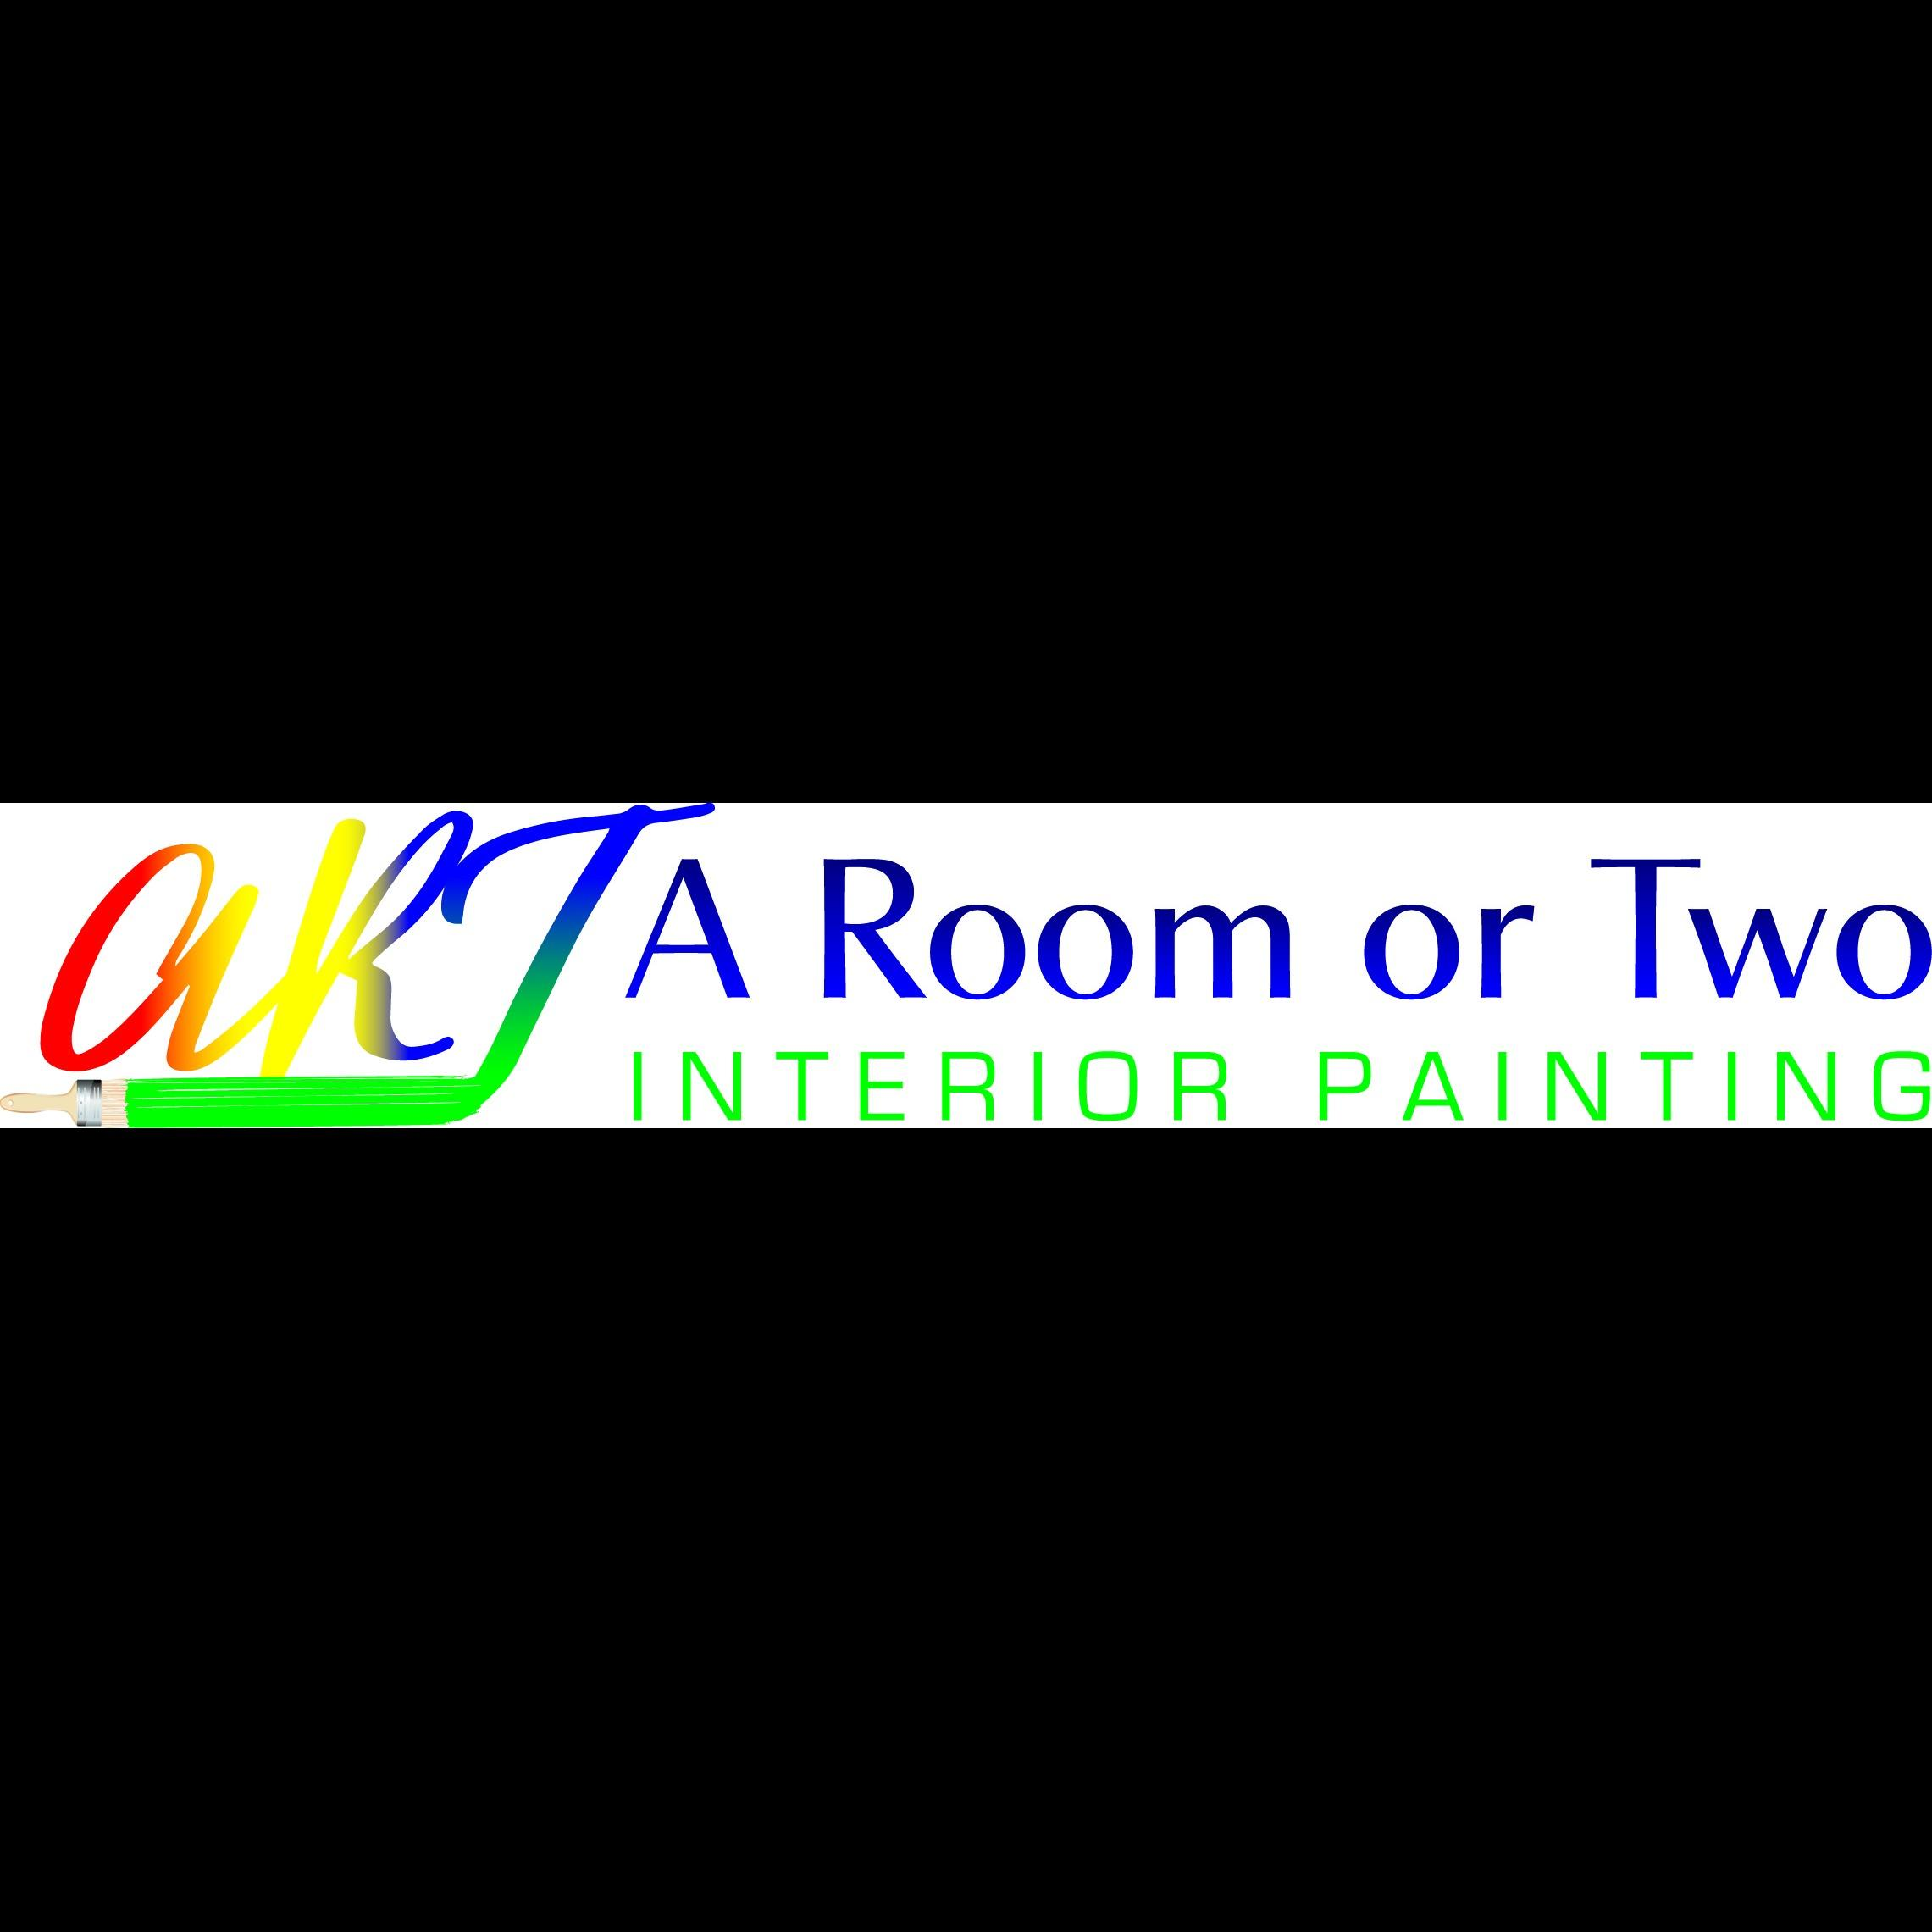 A Room or Two Interior Painting, Llc